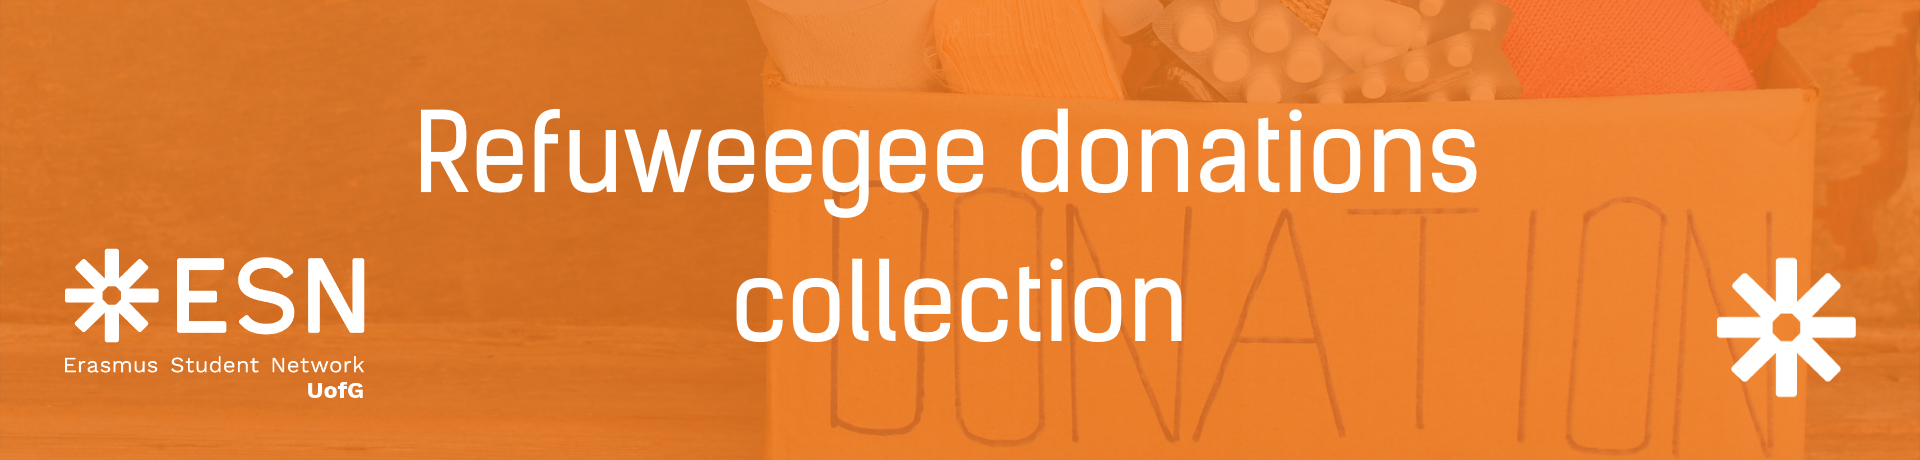 "Text reads ""Refuweegee donations collection"" on an orange background with ESN UofG logo and ESN star logo. End."